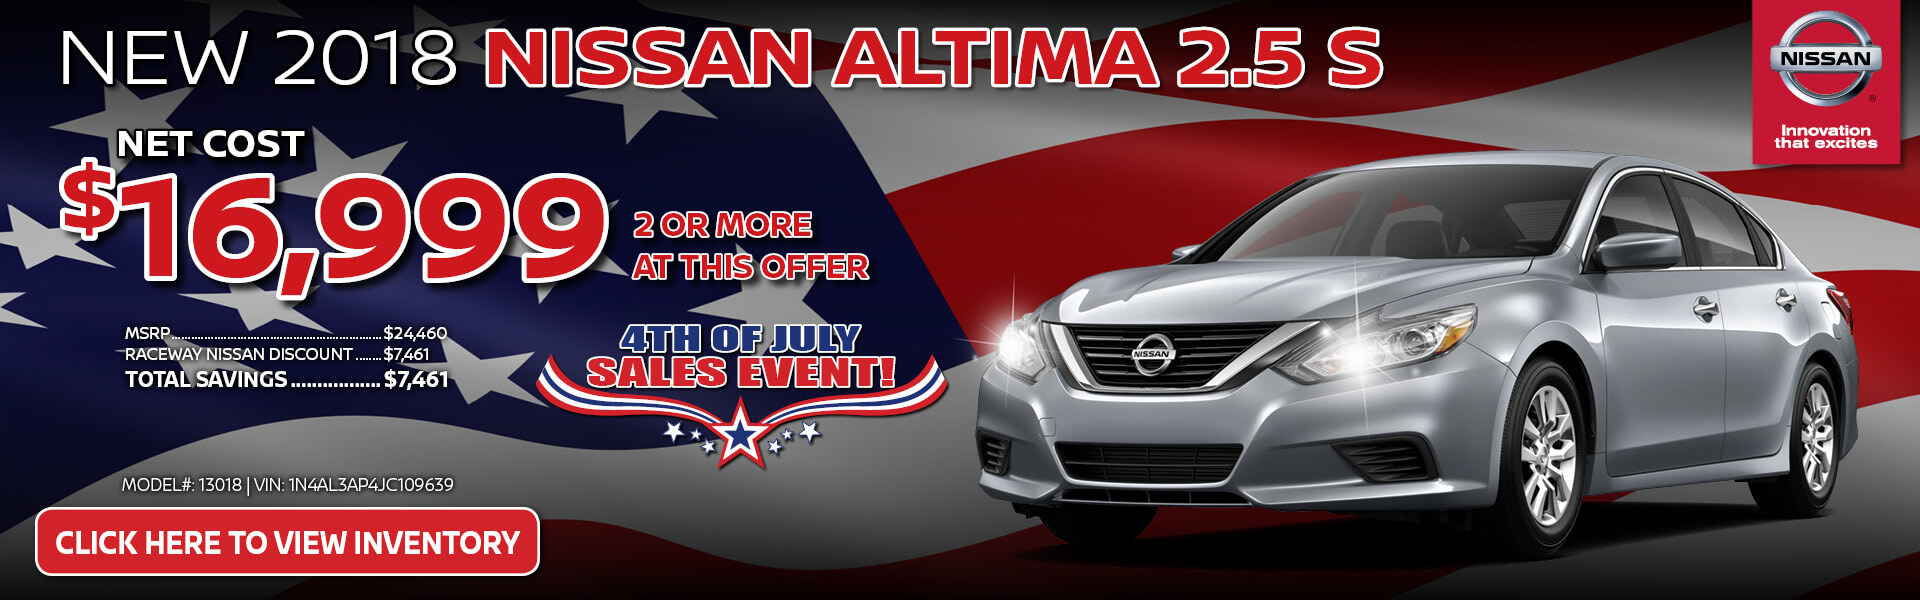 Nissan Altima $16,999 Purchase